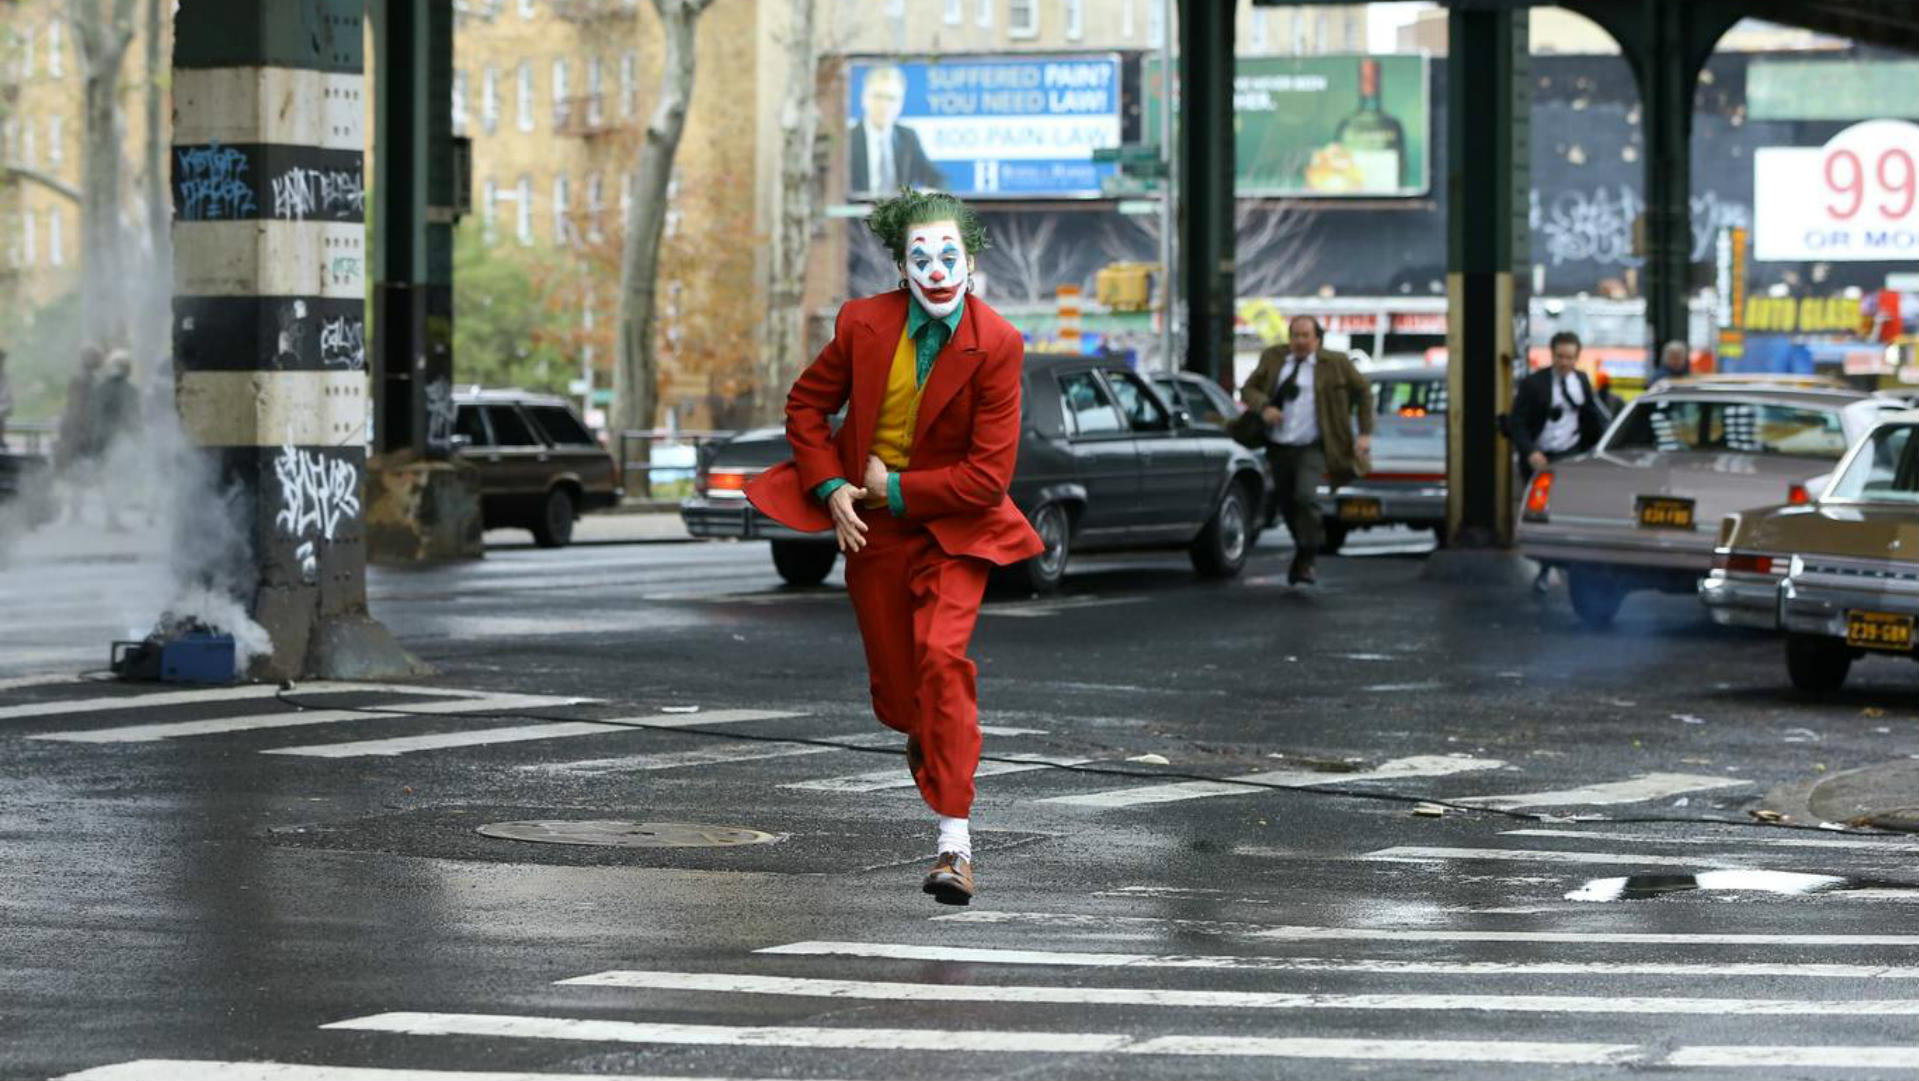 TIFF 2019 Lineup Includes Joker, Jojo Rabbit & Knives Out